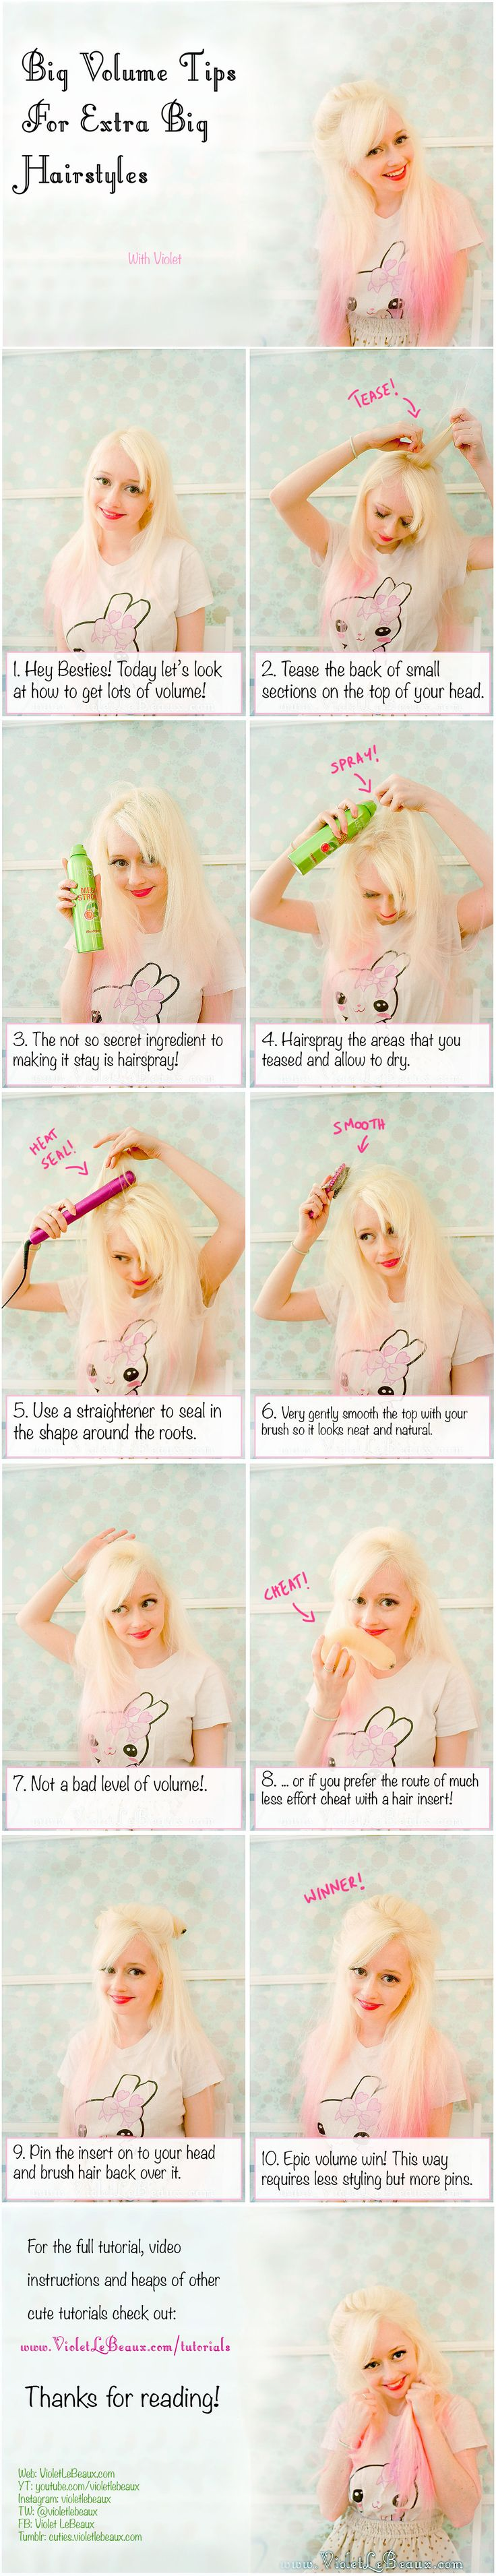 Simple Tips for big hair